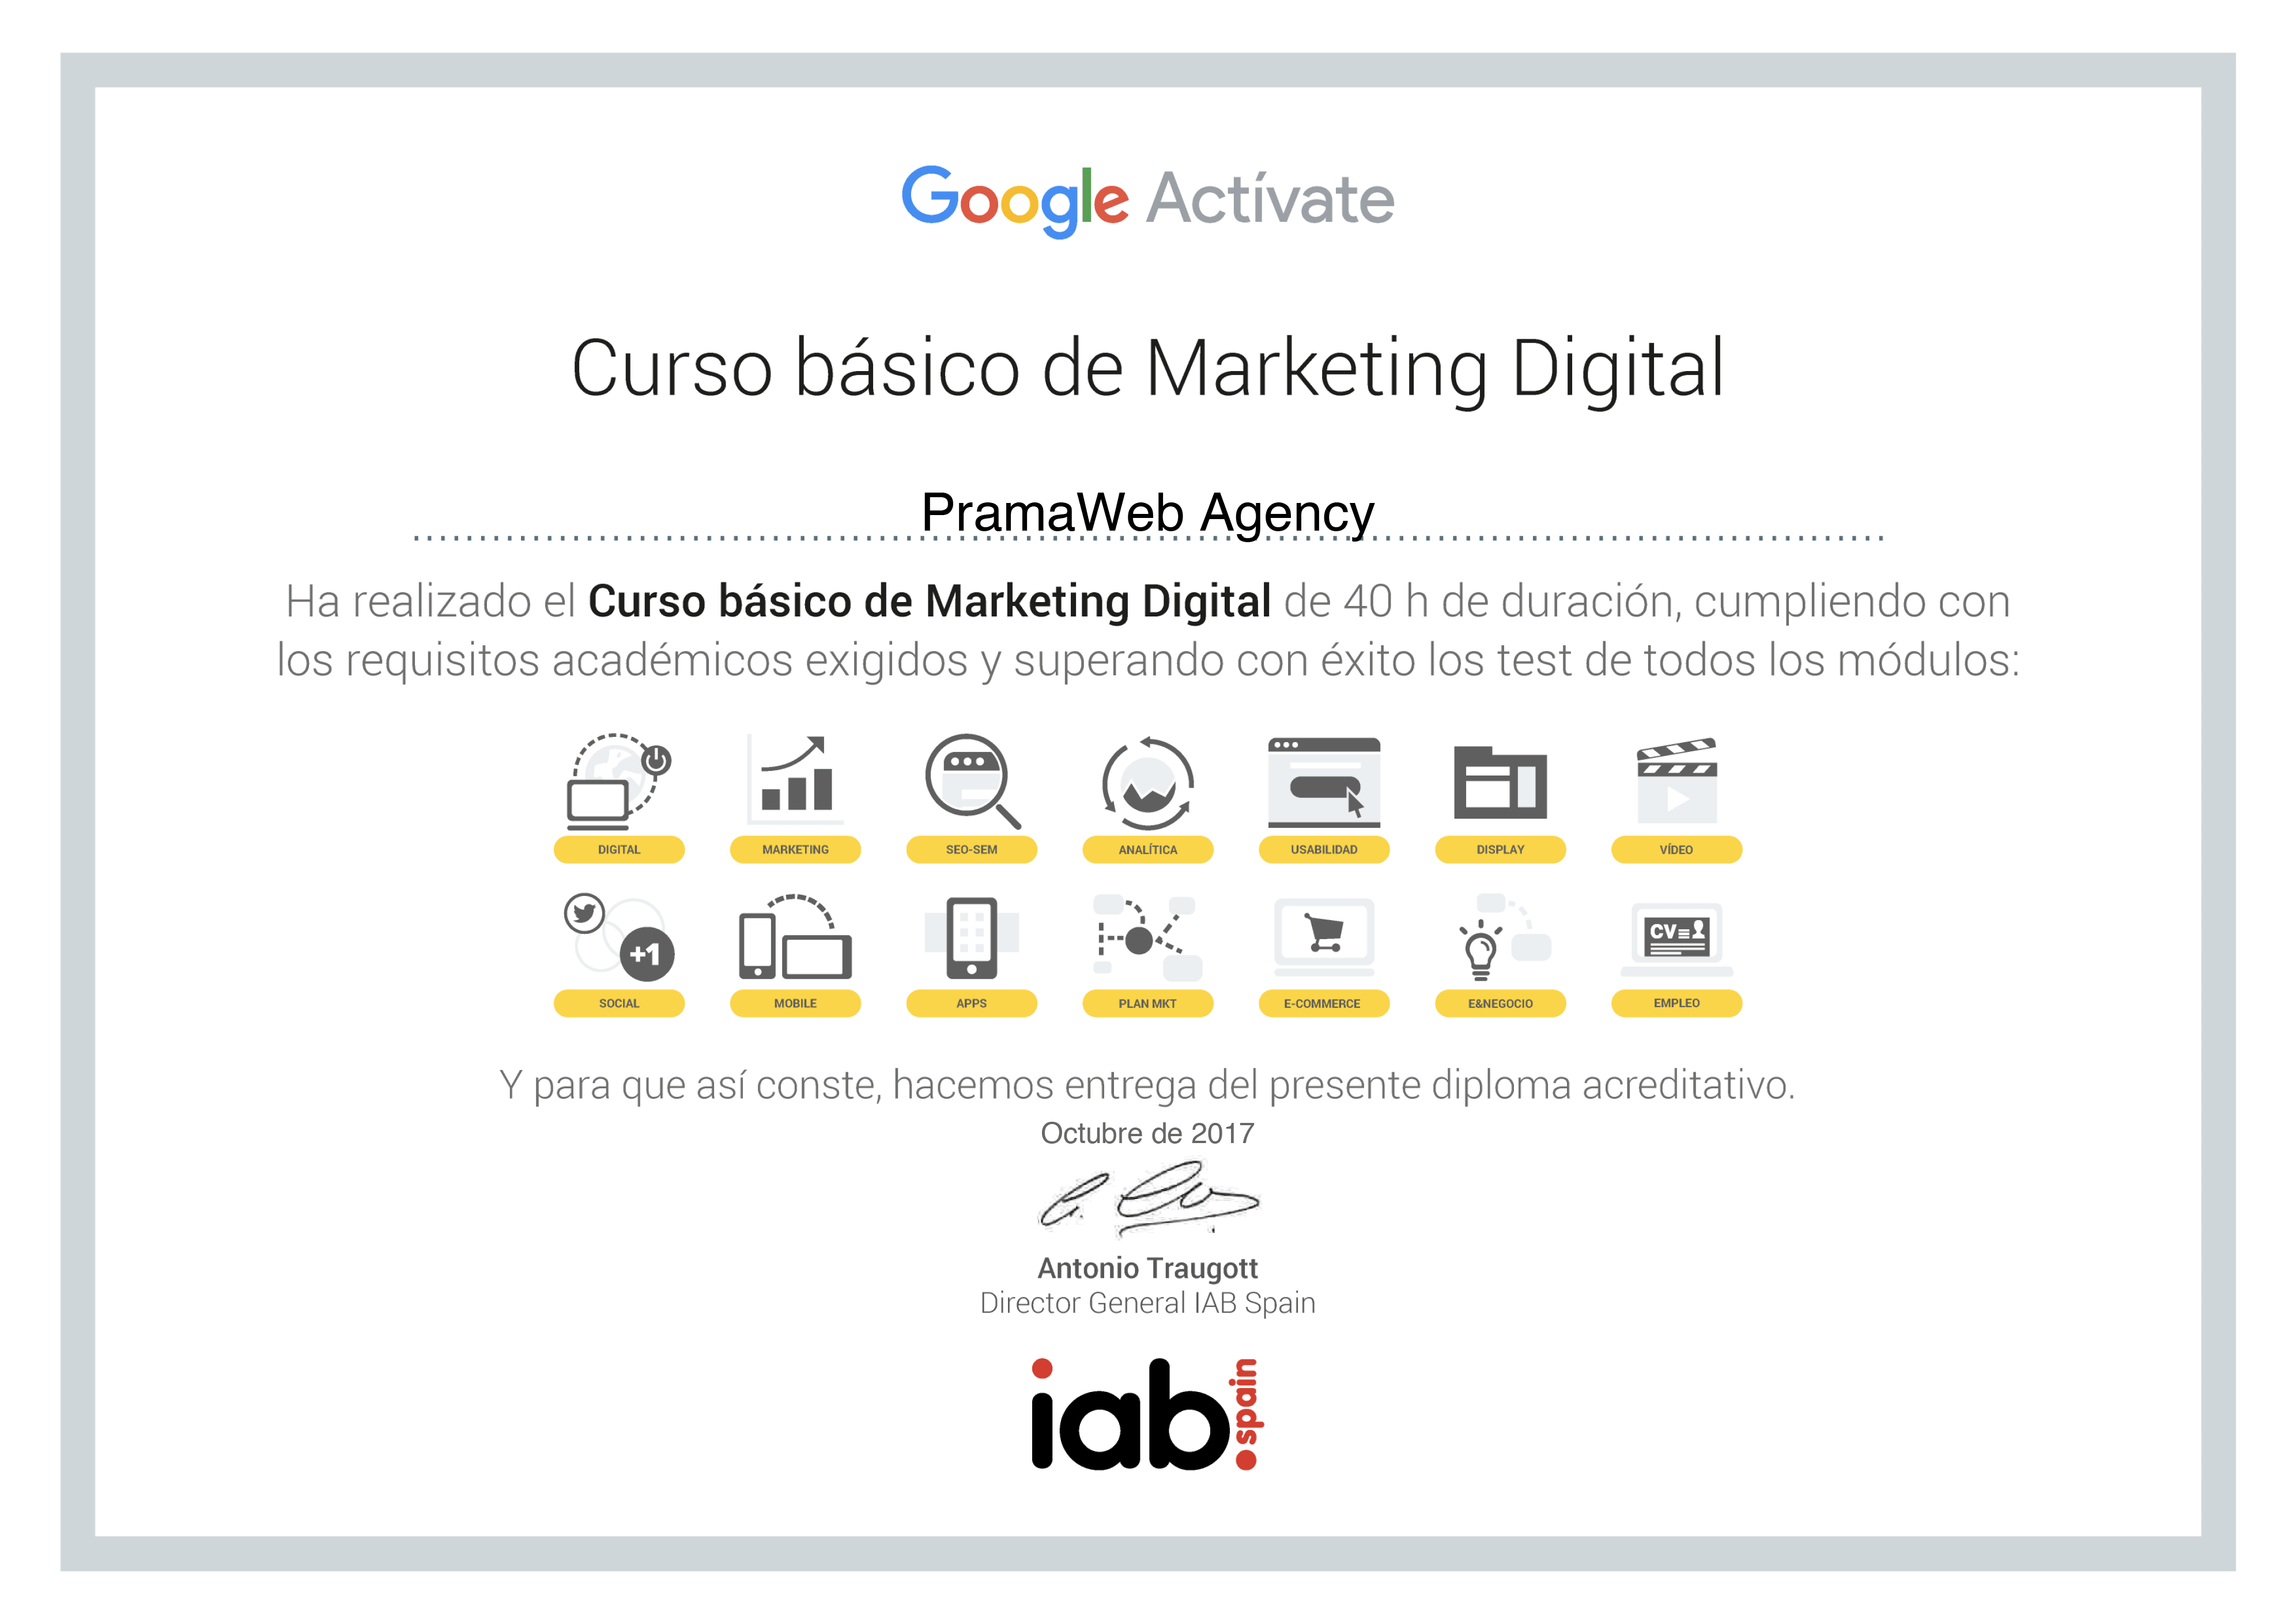 1) Curso Bàsico de Marketing Digital